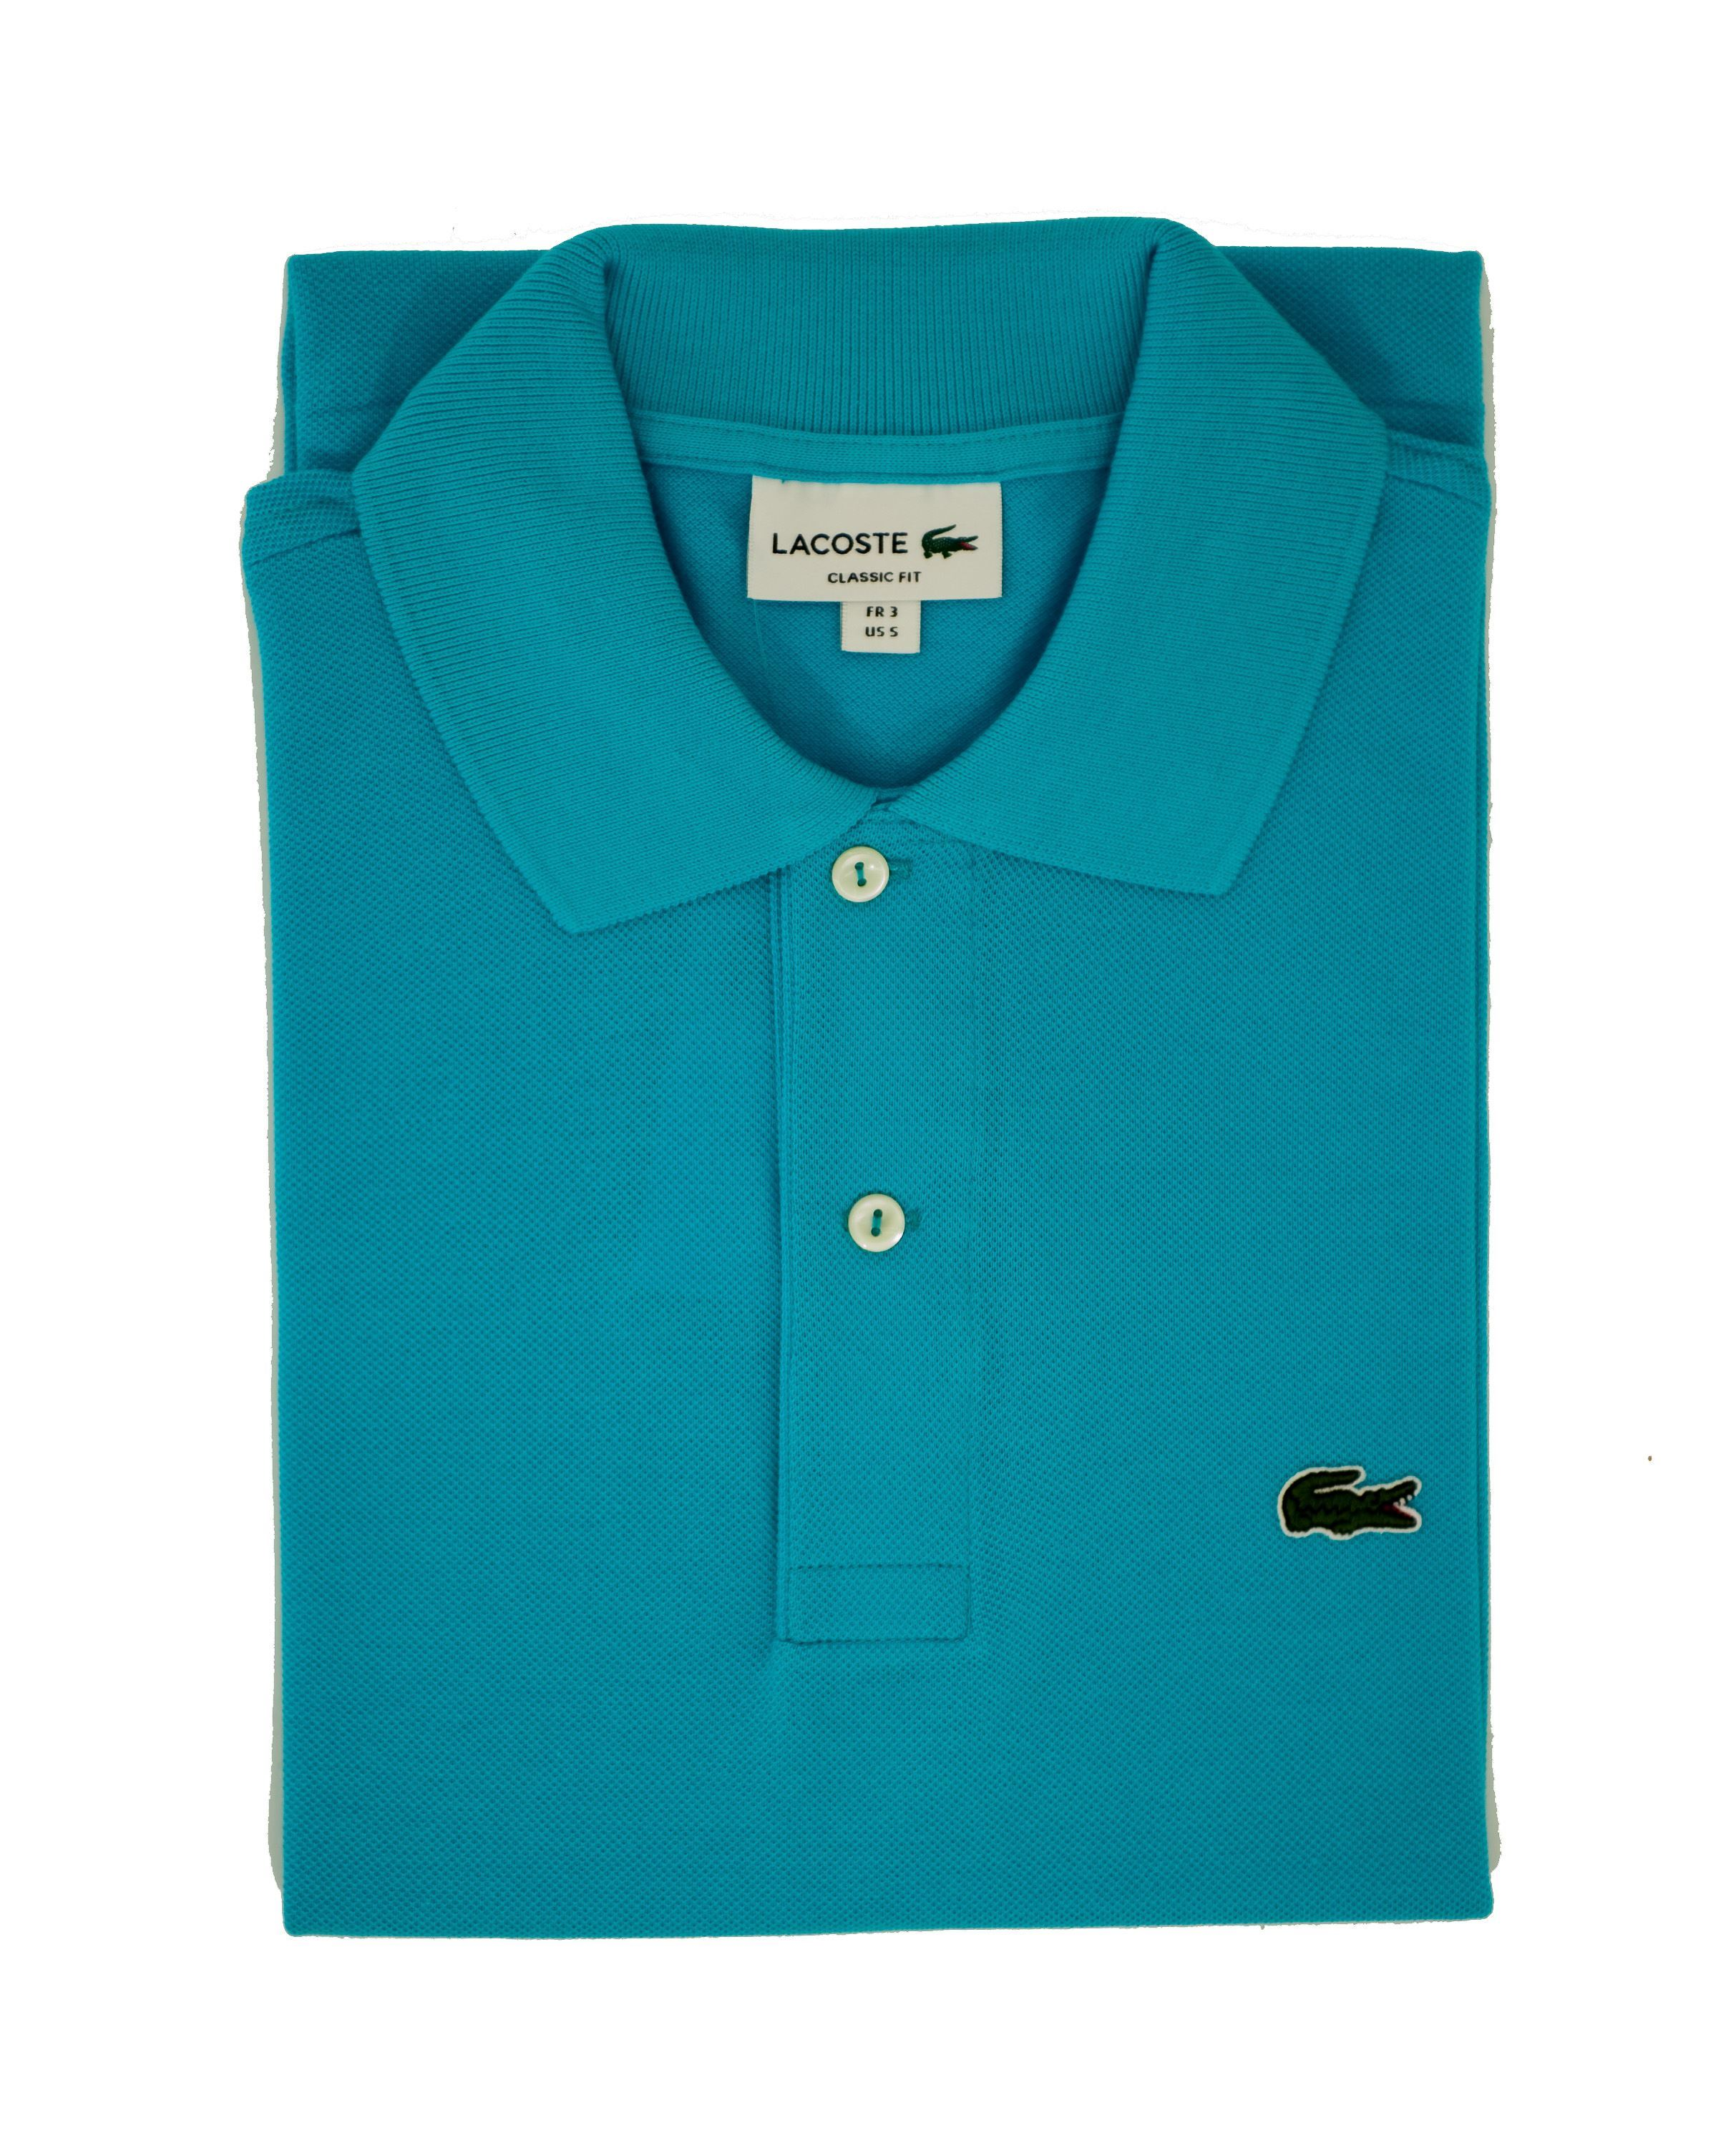 Picture of Polo Lacoste turquoise